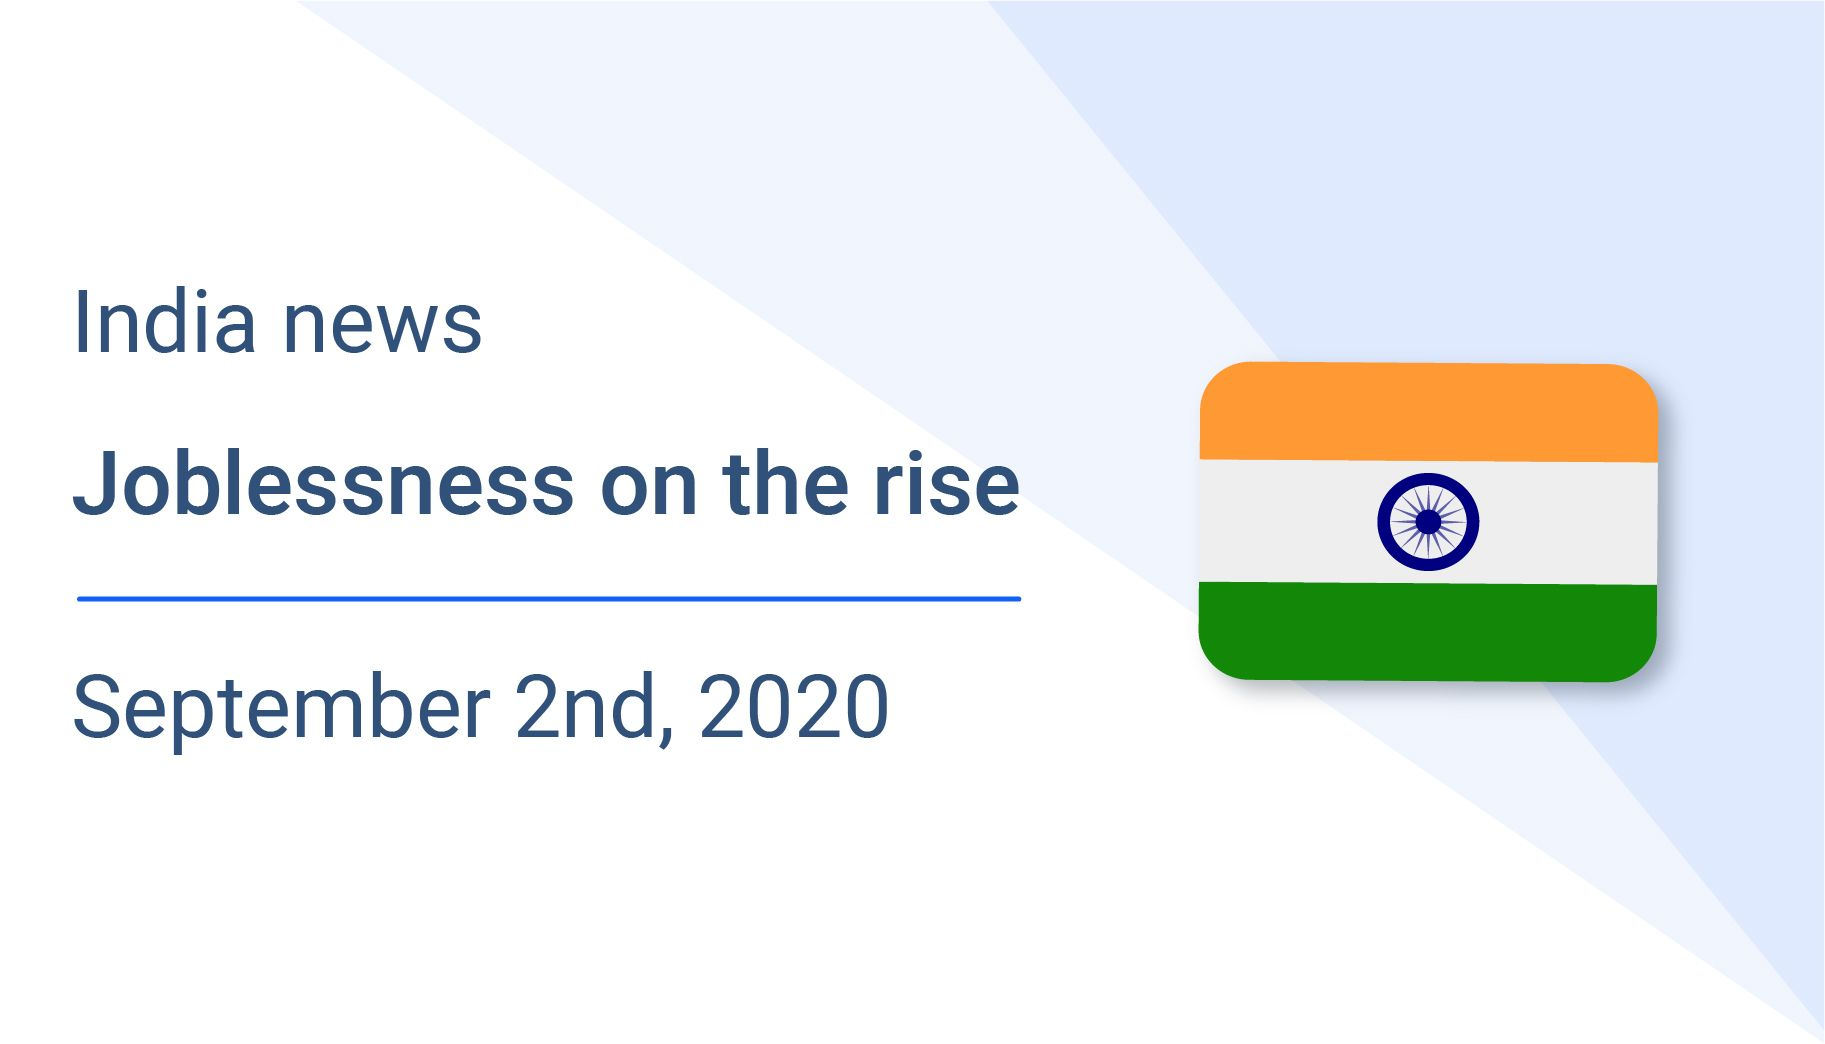 Joblessness on the rise in India